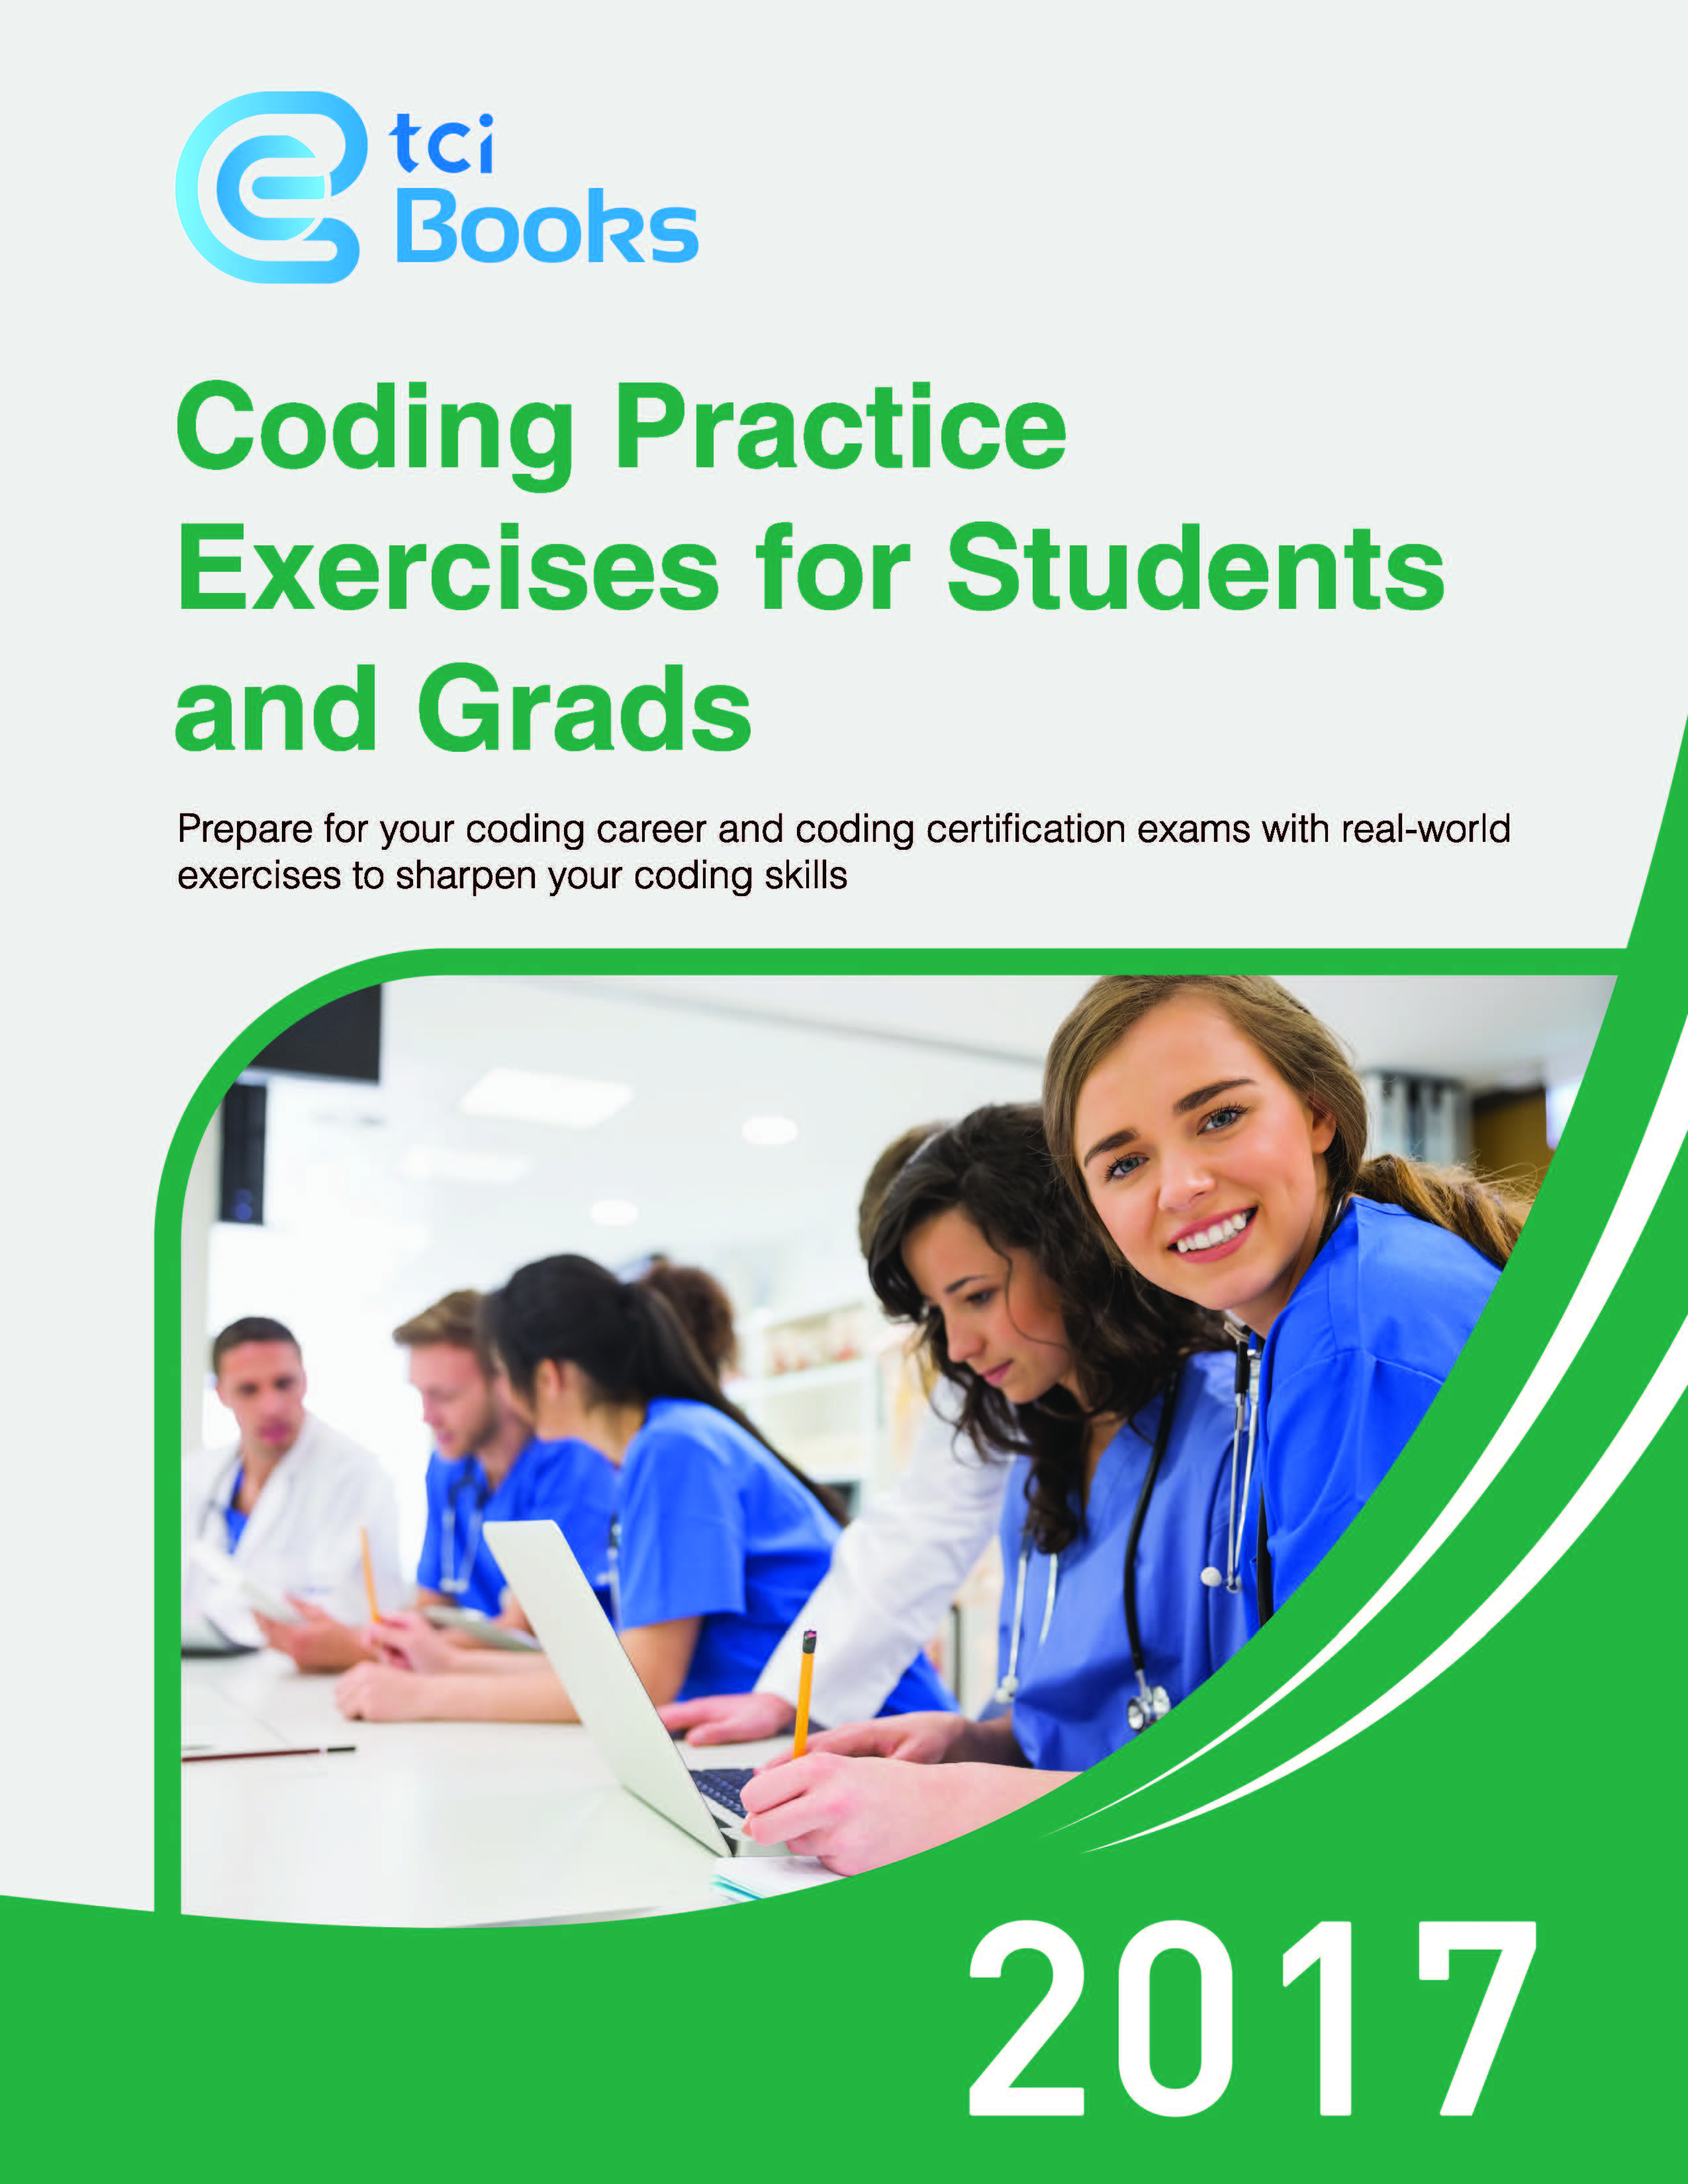 Vendor book store aapc coding practice exercises for students and gradstci publisher the coding insitute llc isbn 978 1 63527 246 8 price 149 members 13410 fandeluxe Choice Image